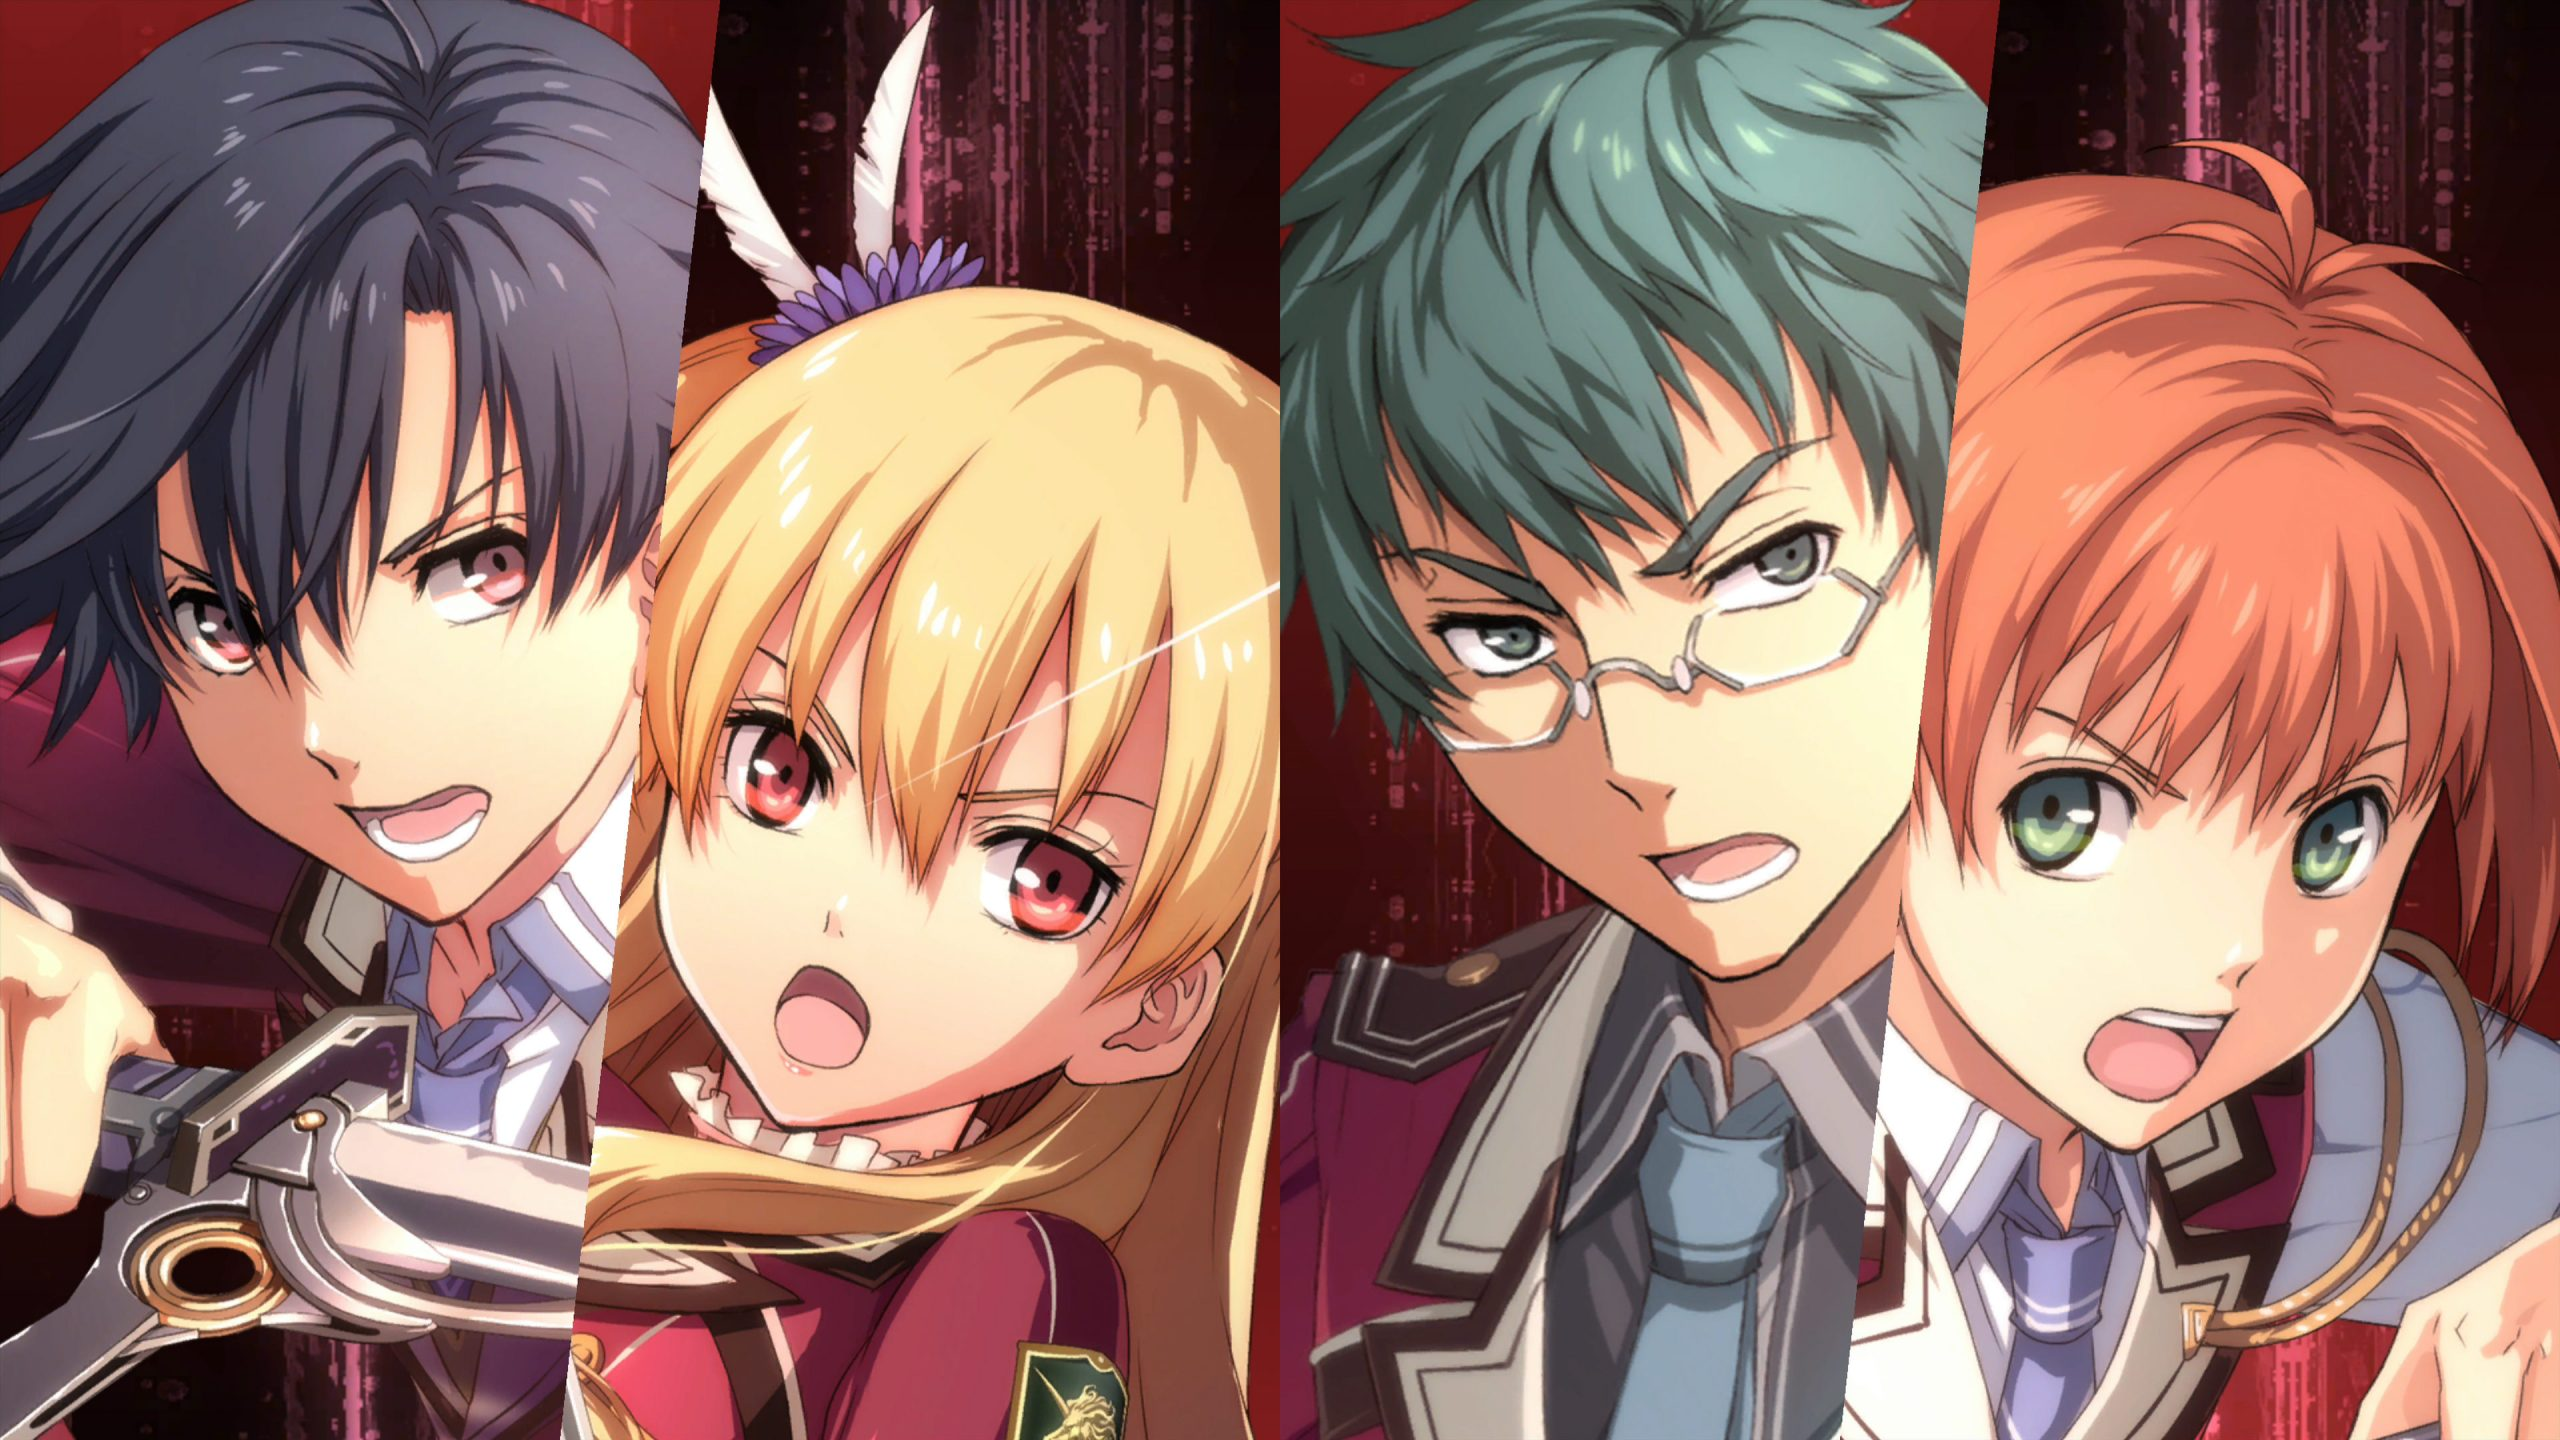 Trails of Cold Steel Character Headshots